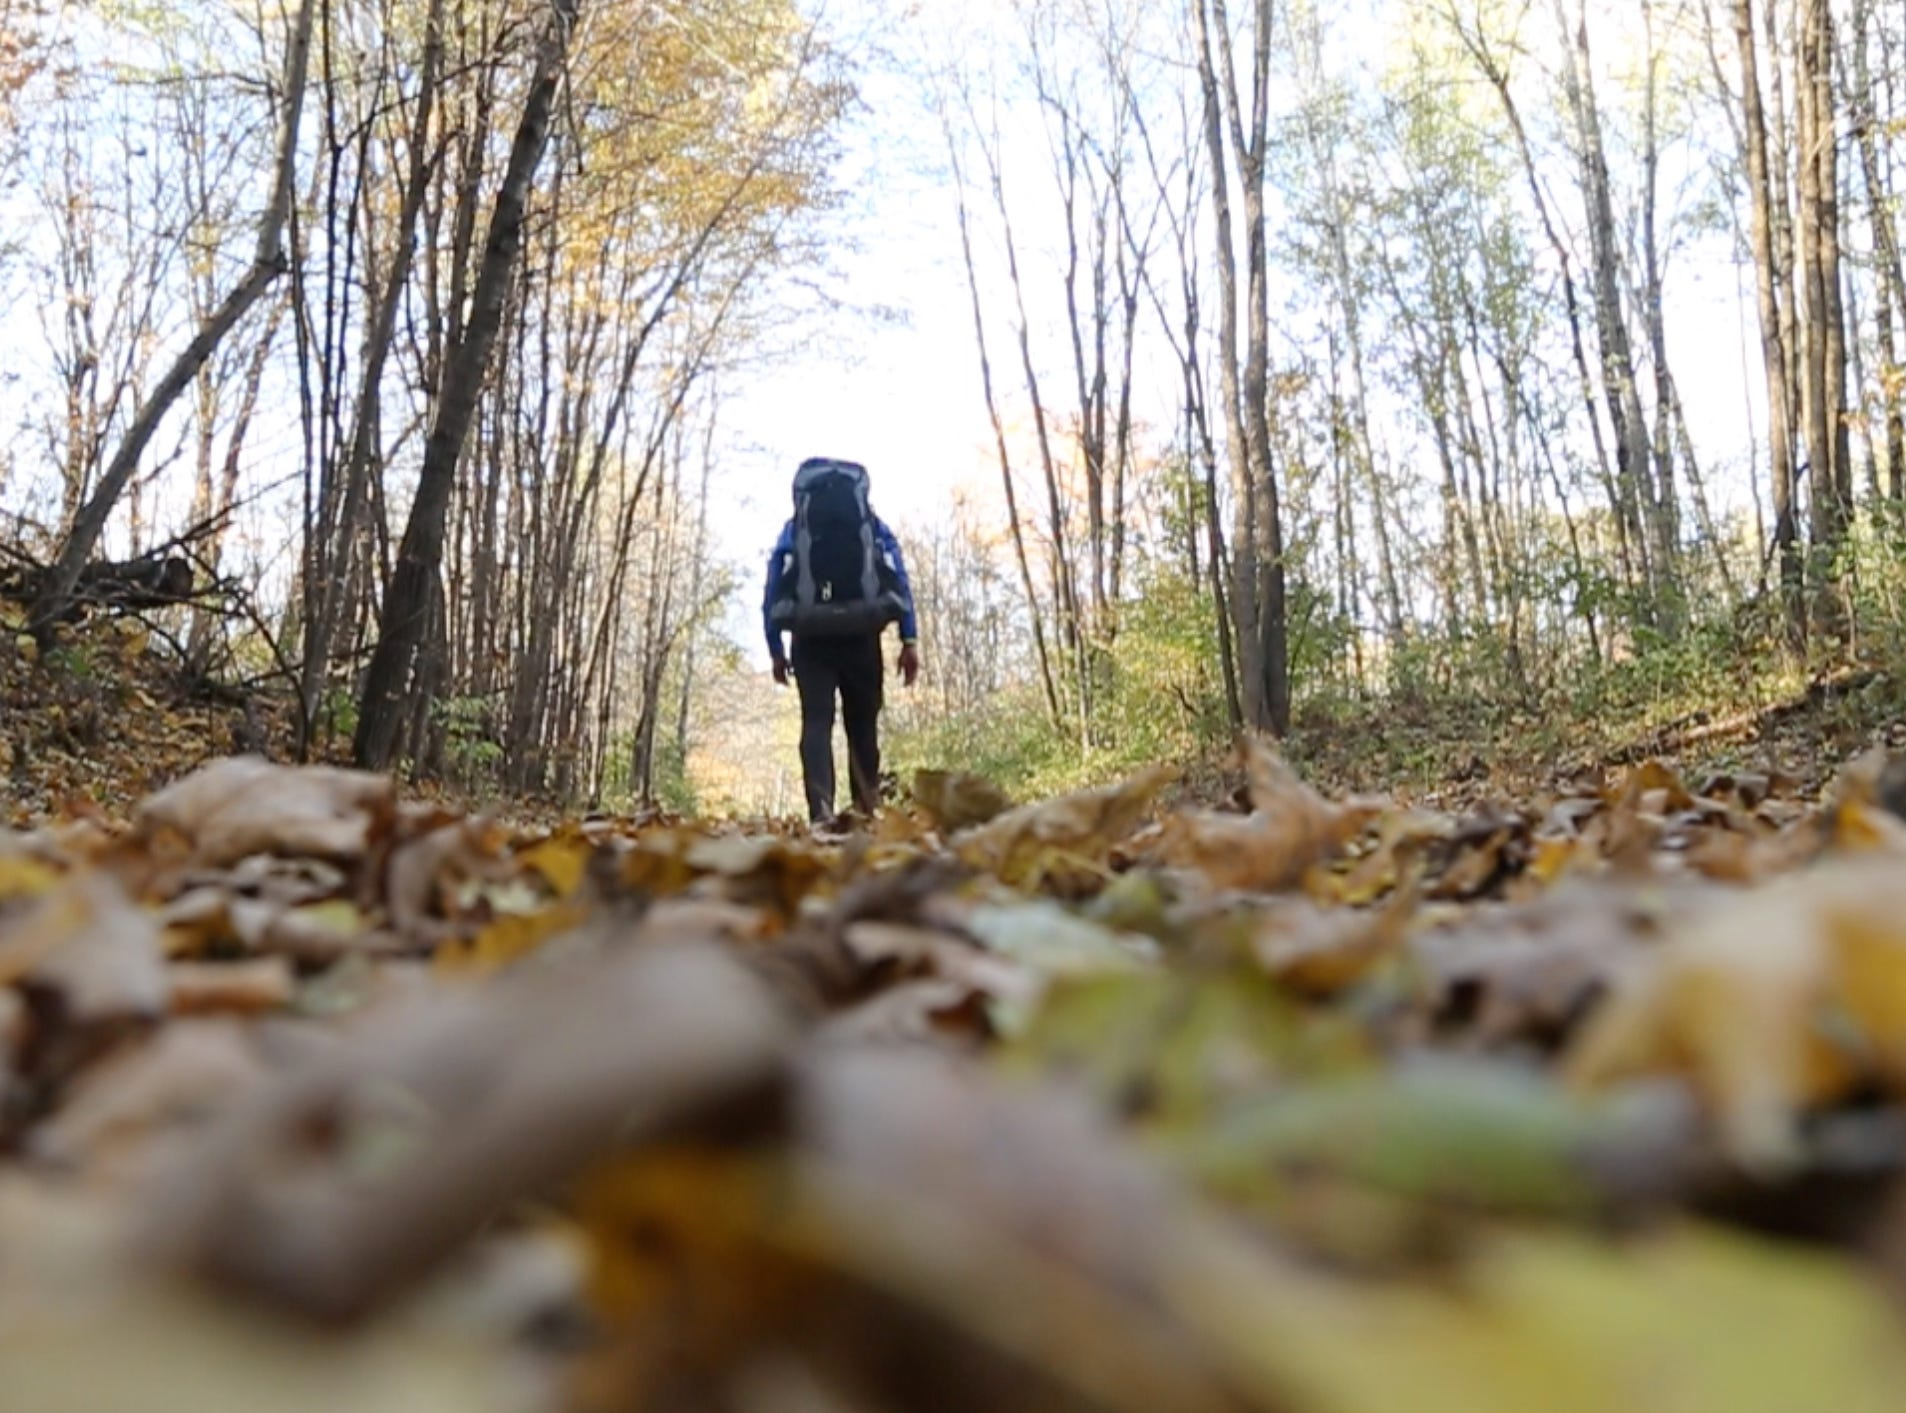 Fallen leaves blanket the Ice Age Trail in northwestern Wisconsin. Eric Larsen hiked the trail as part of his 500-mile Wisconsathon journey across the state.